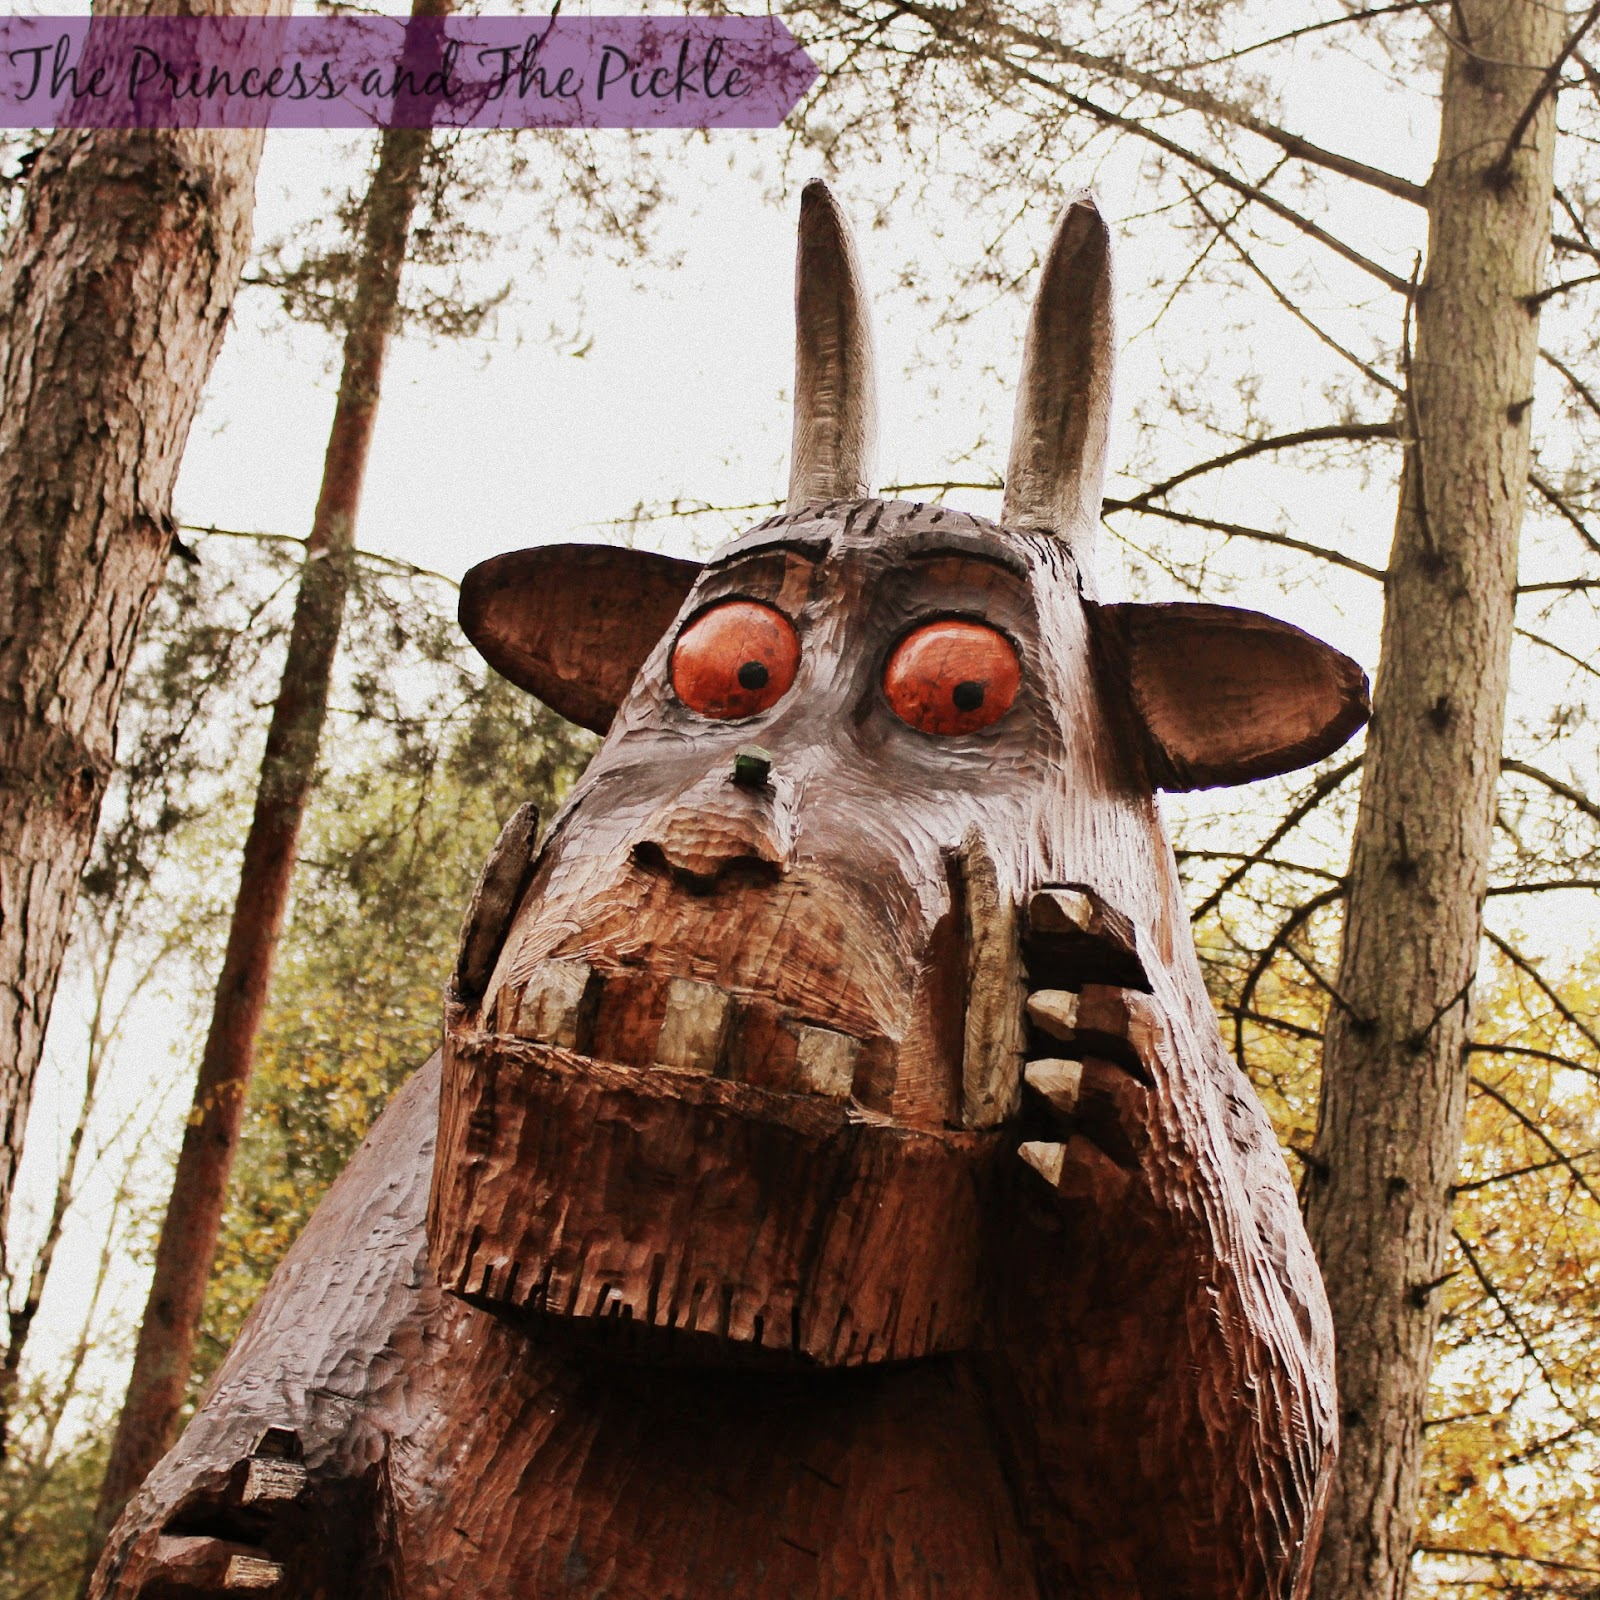 Moors Valley, muddy puddles and a Gruffalo!